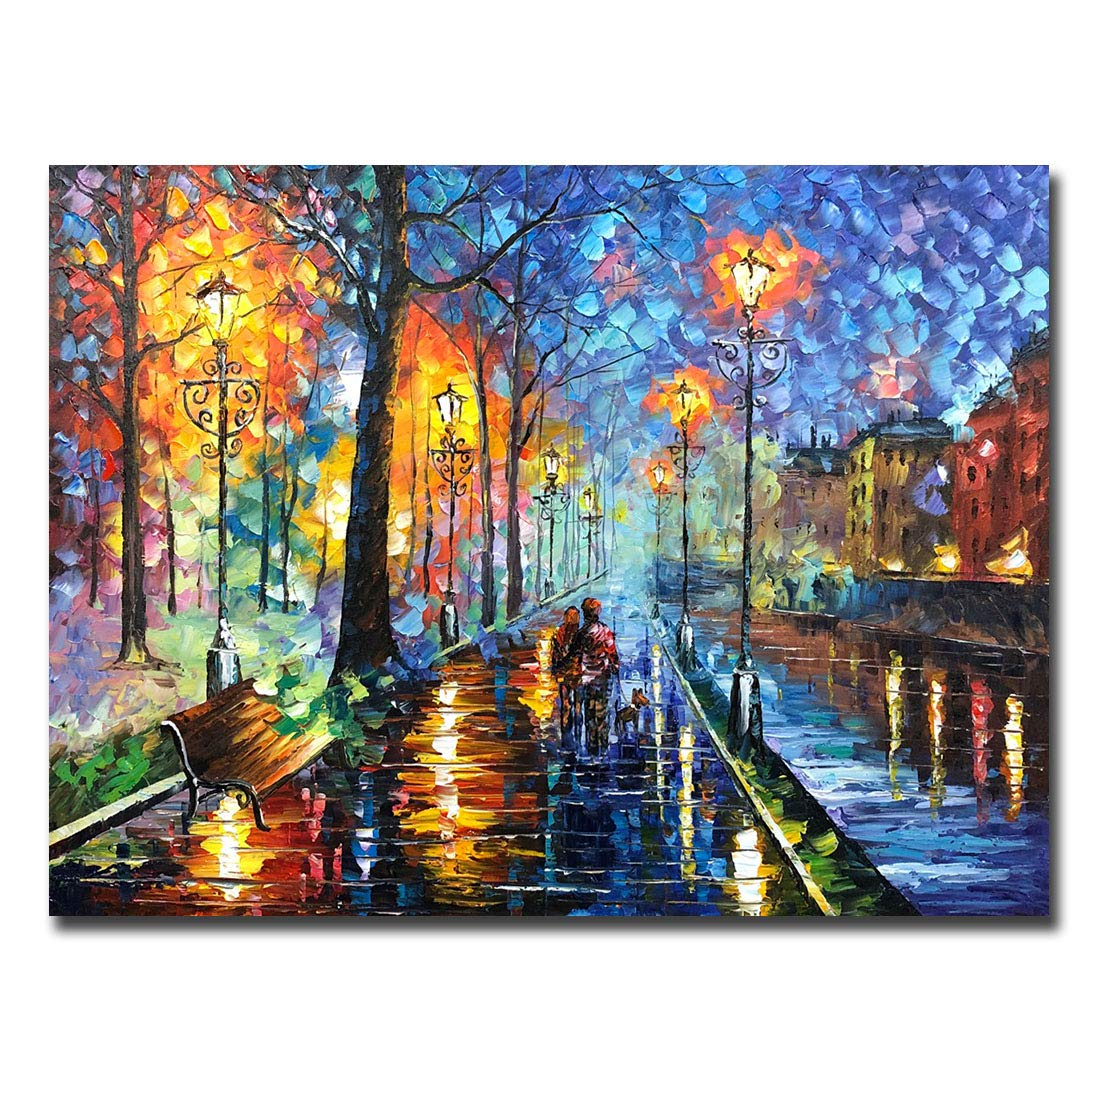 V-inspire art, 30x40 inch, Modern Impressionist Hand painted Streets at night oil paintings on canvas wall art Direct hanging in living room bedroom kitchen and bathroom decoration